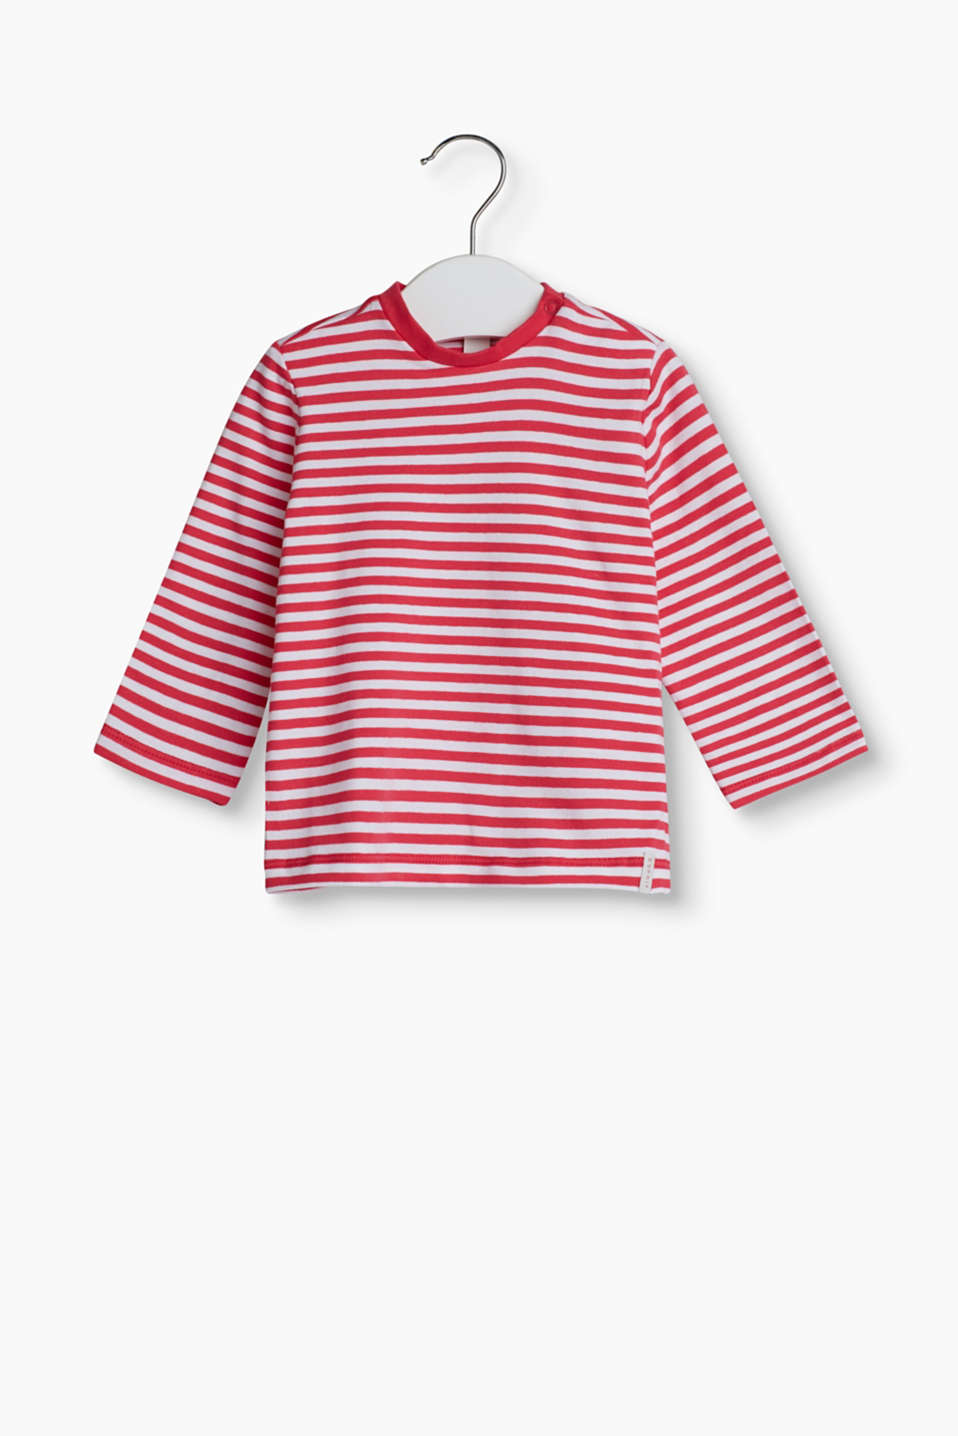 With a stripe pattern: long sleeve top made of soft cotton jersey with a percentage of elastane